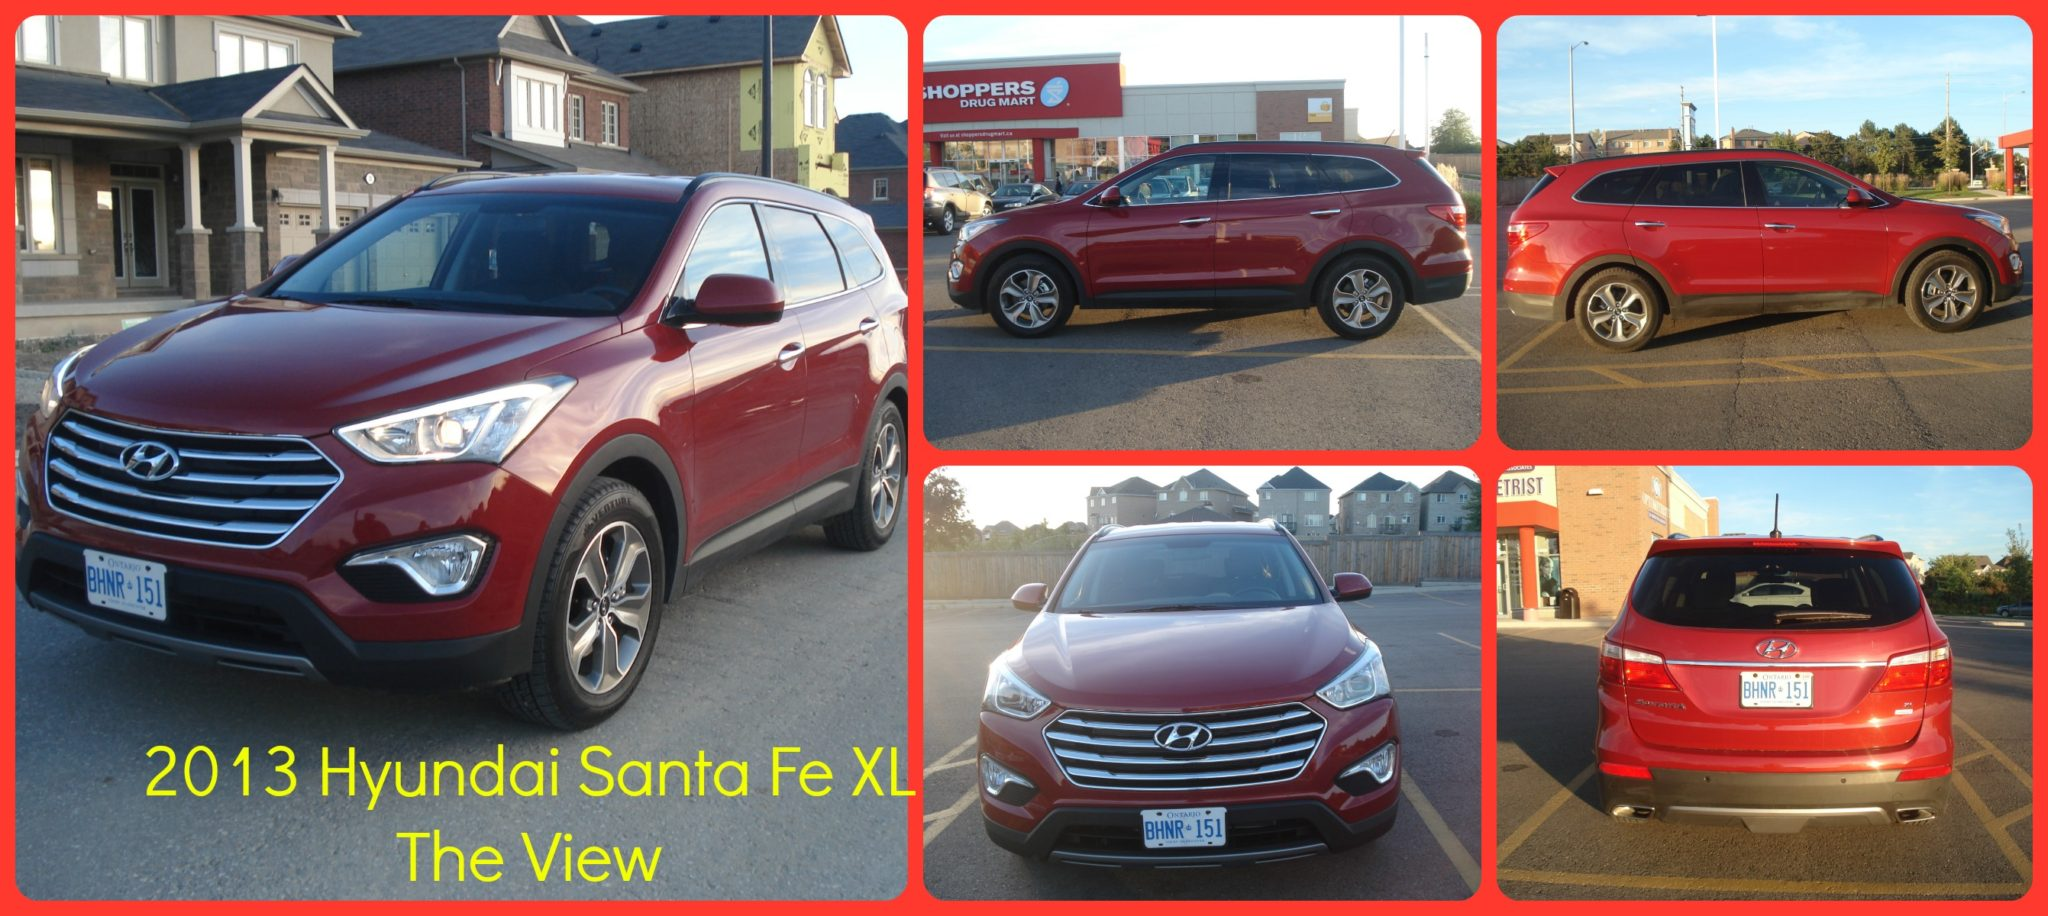 2013 Hyundai Santa Fe XL review